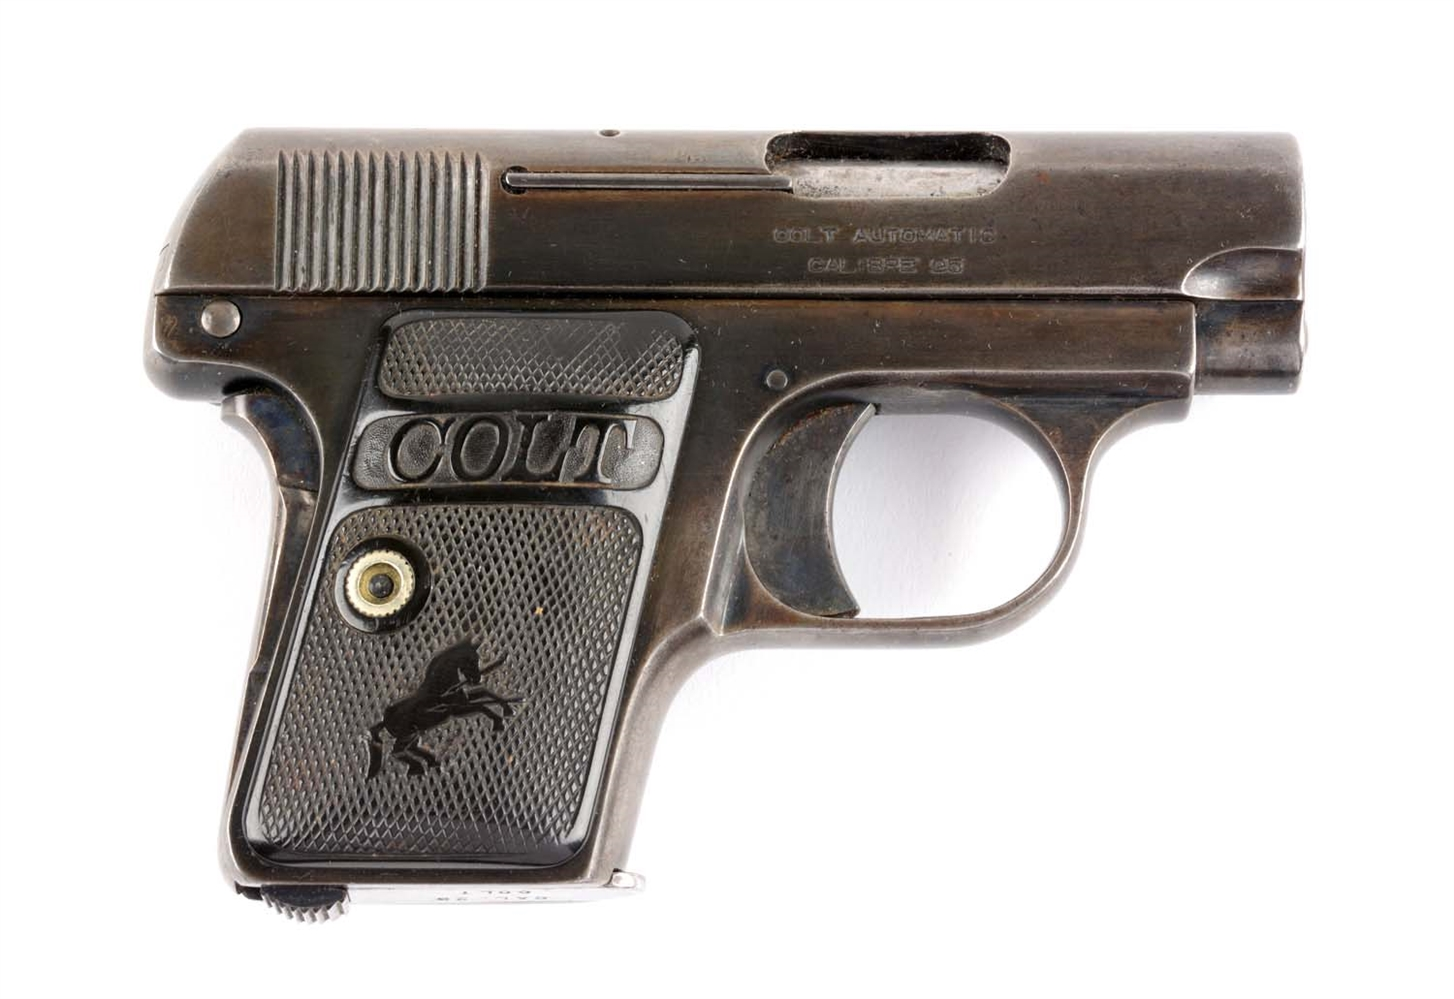 (C) Colt Model 1908 Semi-Automatic Pistol.